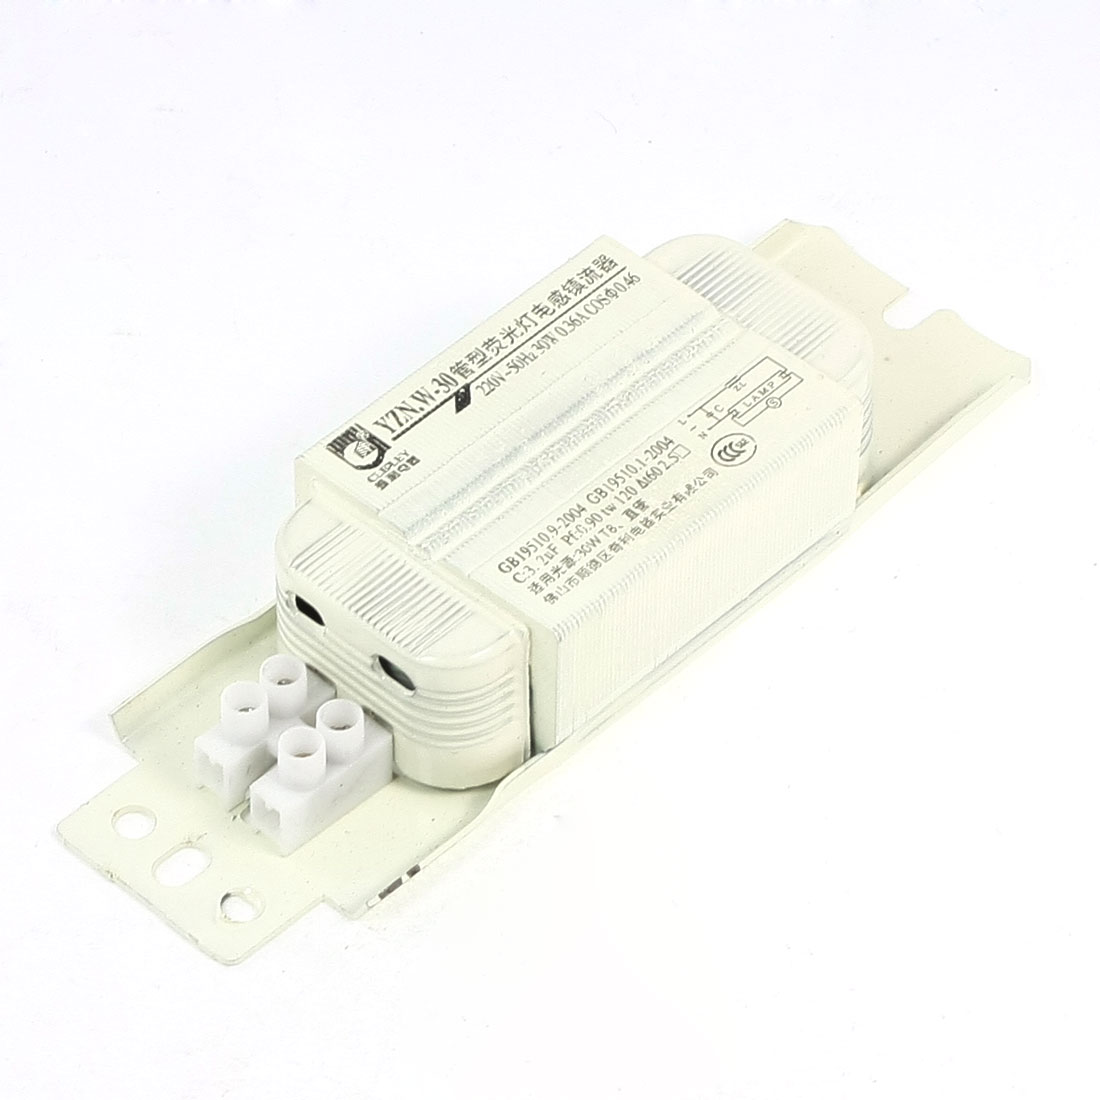 AC 220V 0.36A 30W Fluorescent Lamp Ballast for 30W T8 Stripe Tube